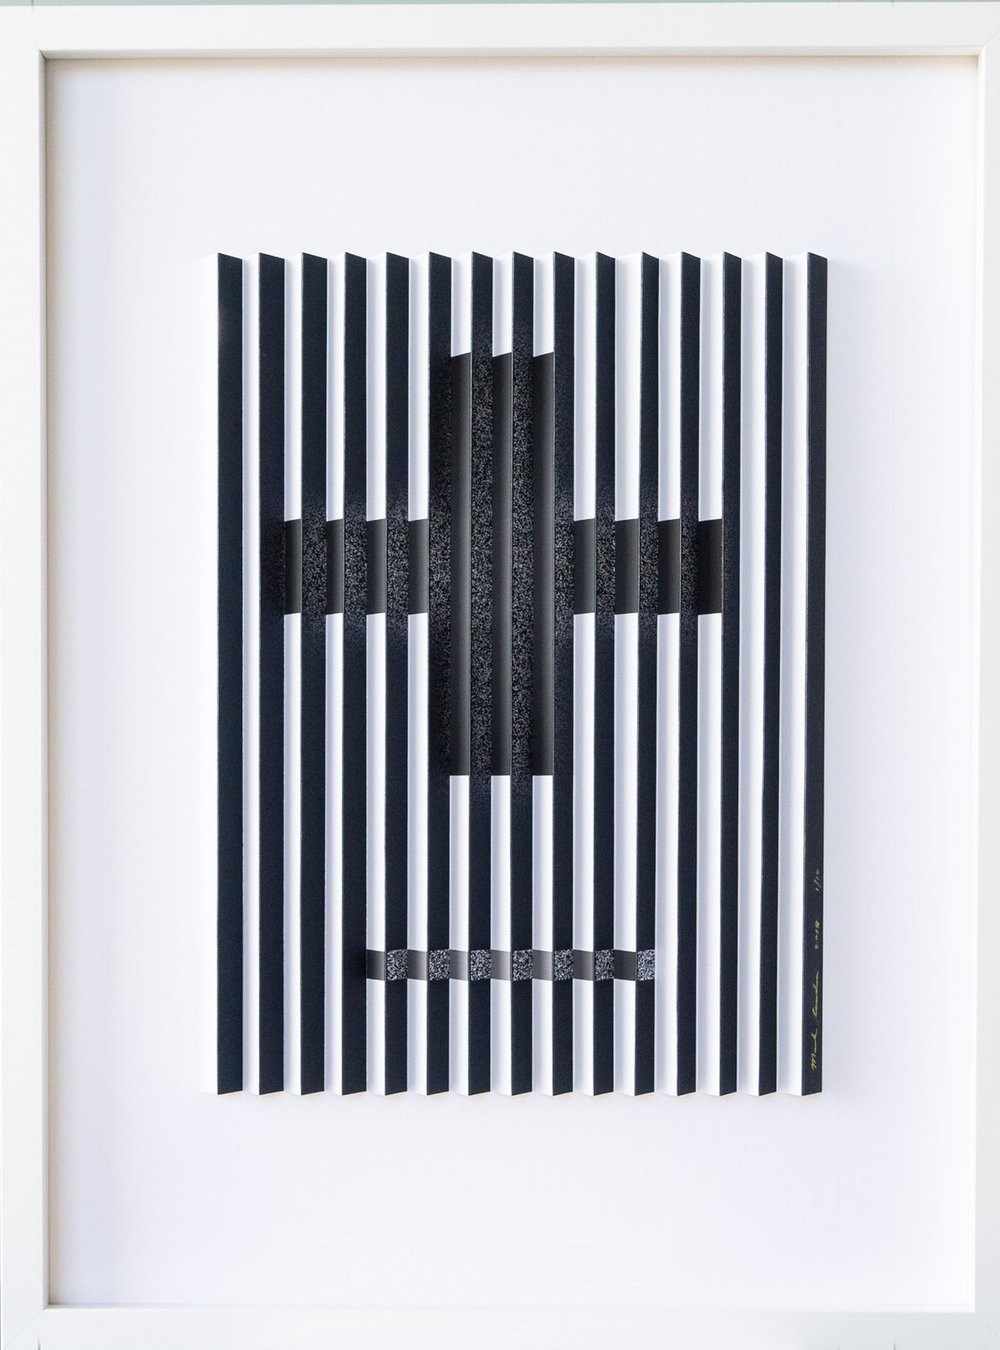 Silver Cross  Mark Cowden, limited edition multiplane work, 490mm x 640mm inc frame  sold